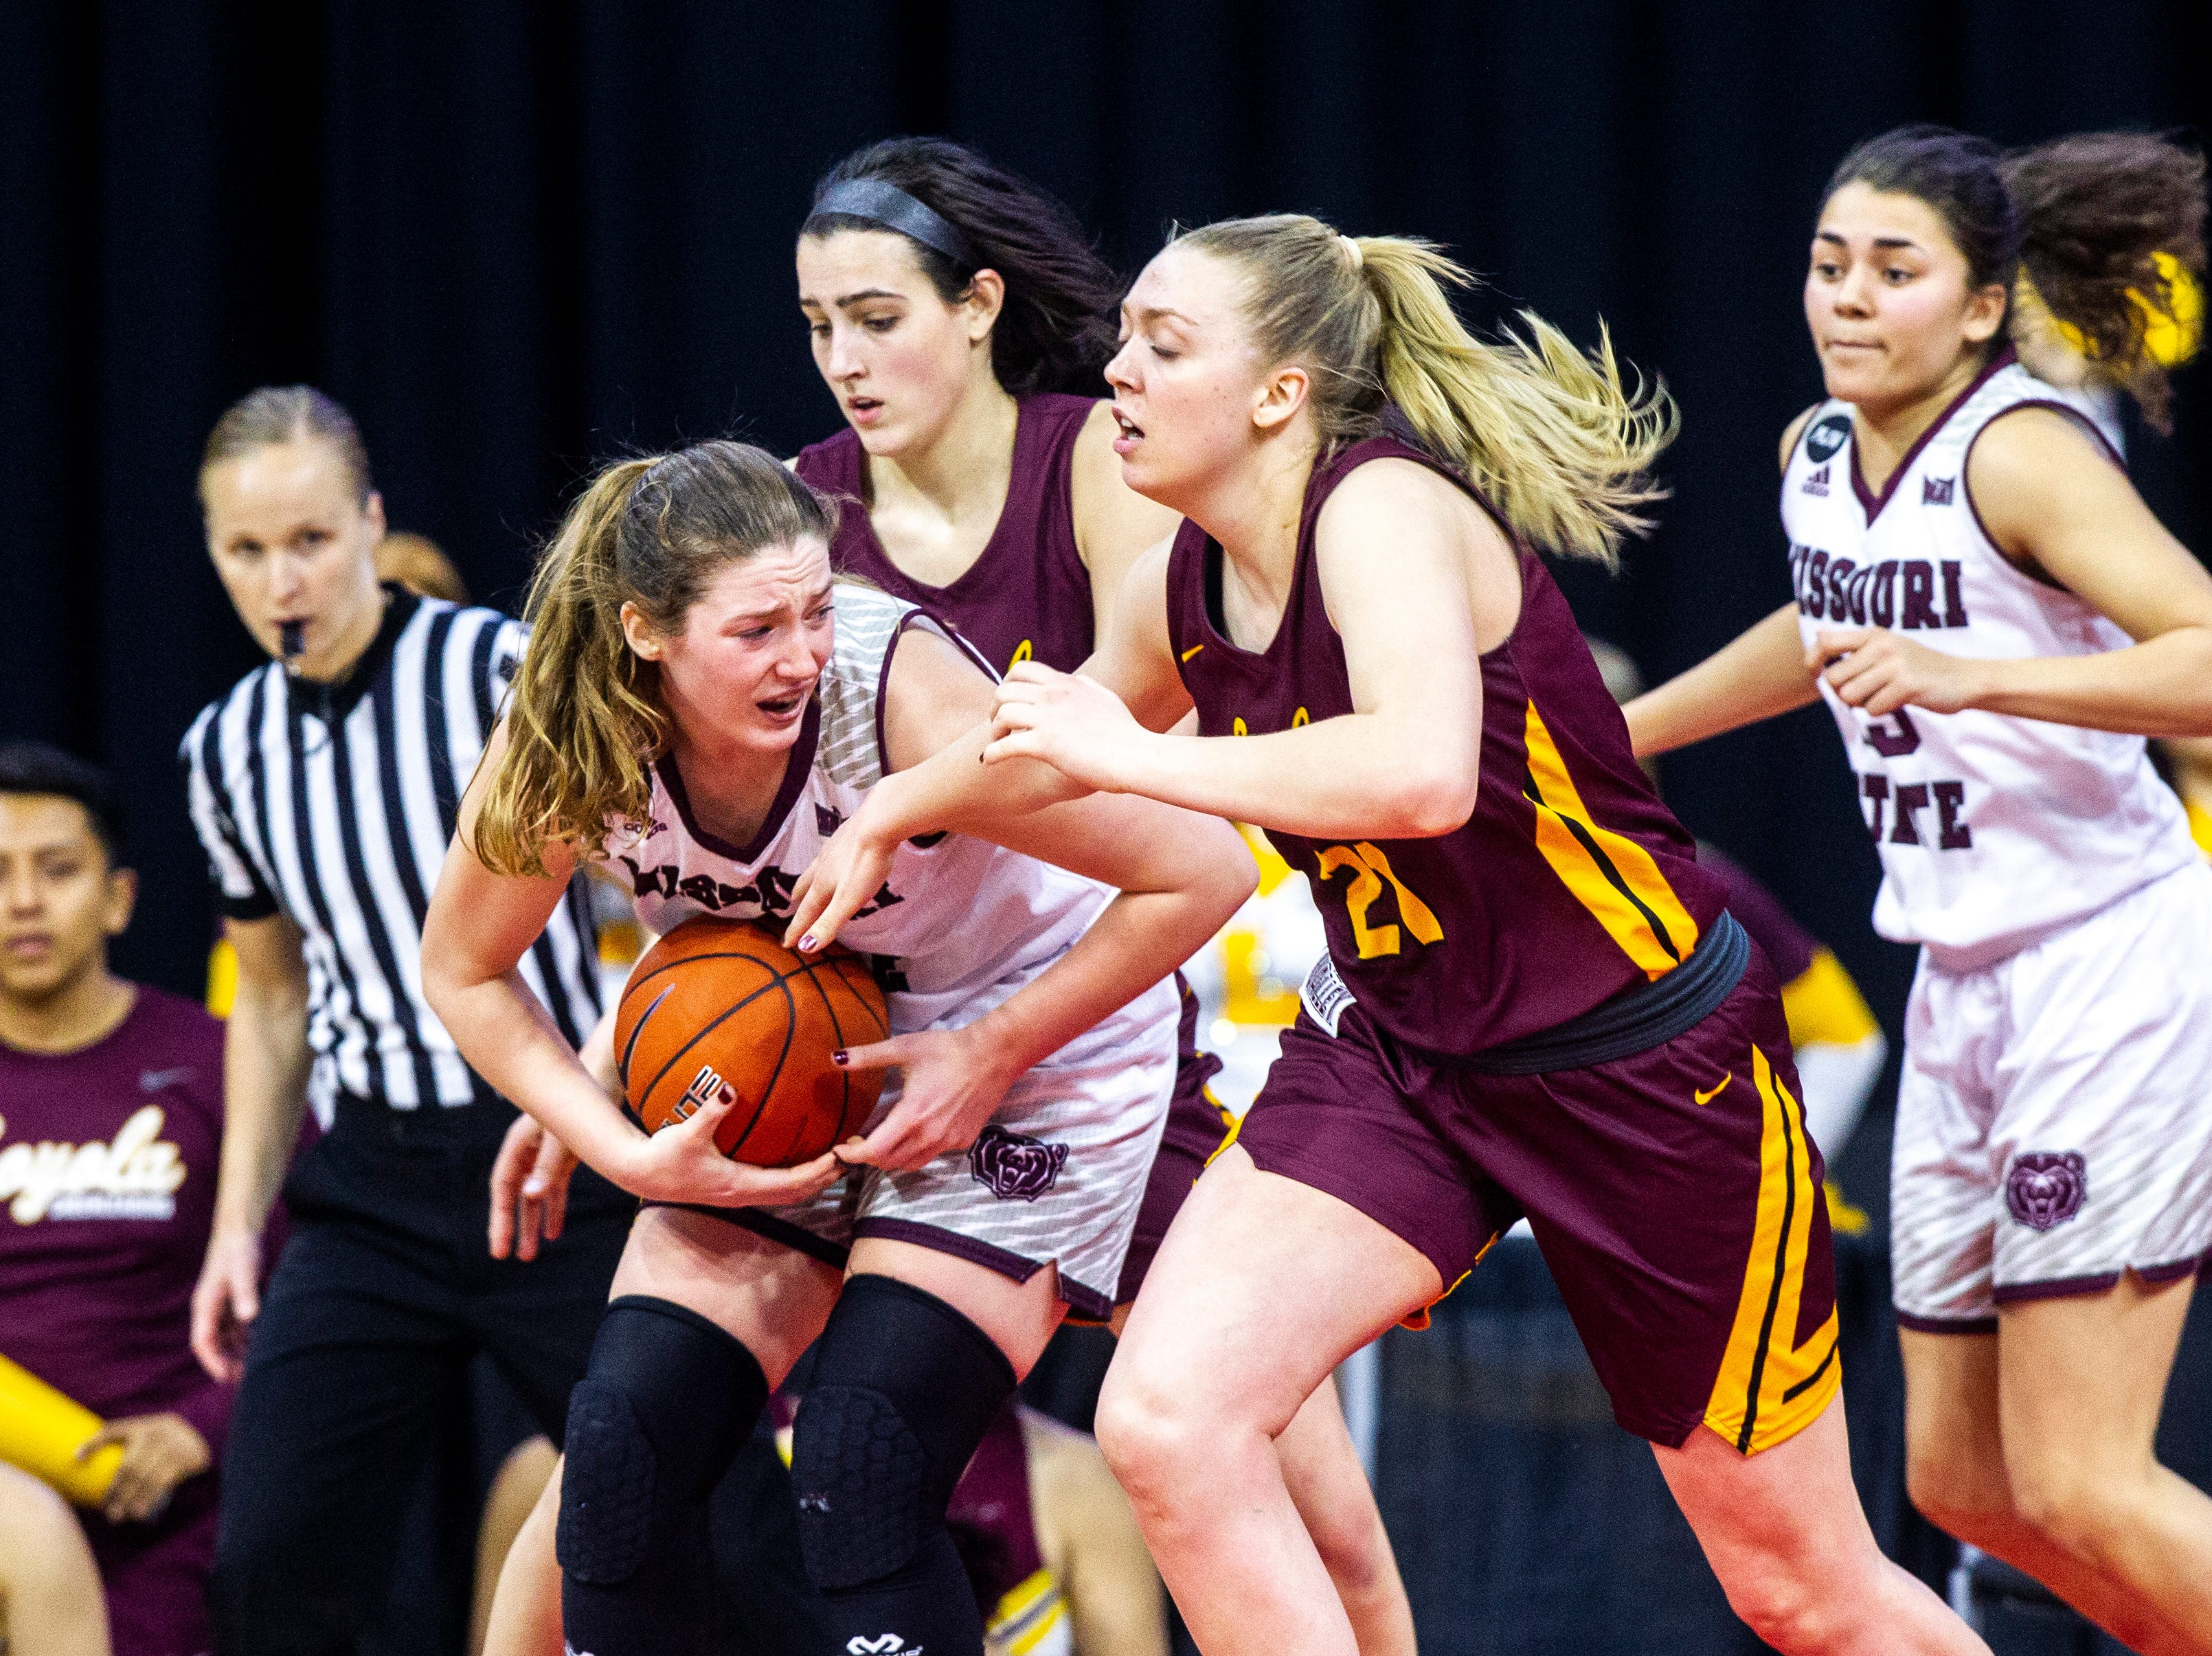 Missouri State forward Abby Hipp grabs a rebound against Loyola (Chicago)'s Abby O'Connor, second from left, and Loyola (Chicago) forward Allison Day (21) during a NCAA Missouri Valley Conference women's basketball quarterfinal tournament game, Friday, March 15, 2019, at the TaxSlayer Center in Moline, Illinois.